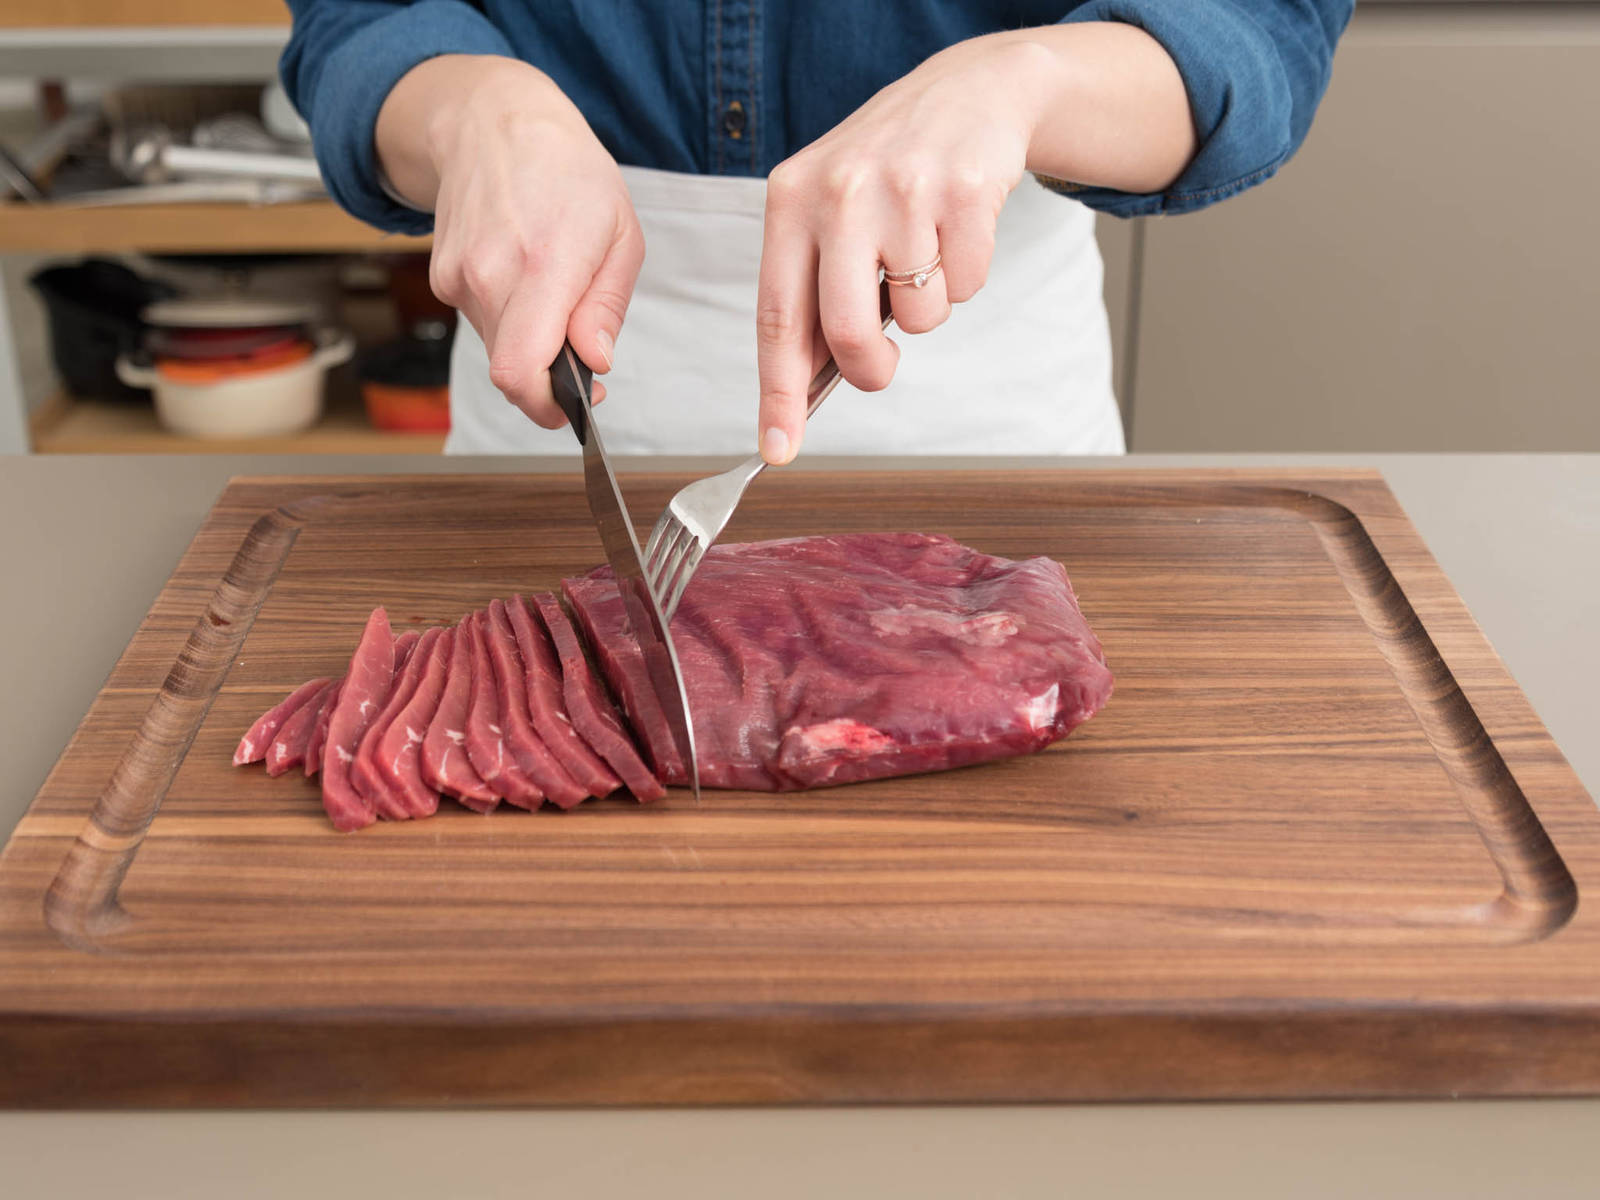 Wrap beef in plastic wrap and freeze for approx. 1 hr. for easier slicing. Cut beef against the grain into thin slices. Place in large freezer bag or large bowl.